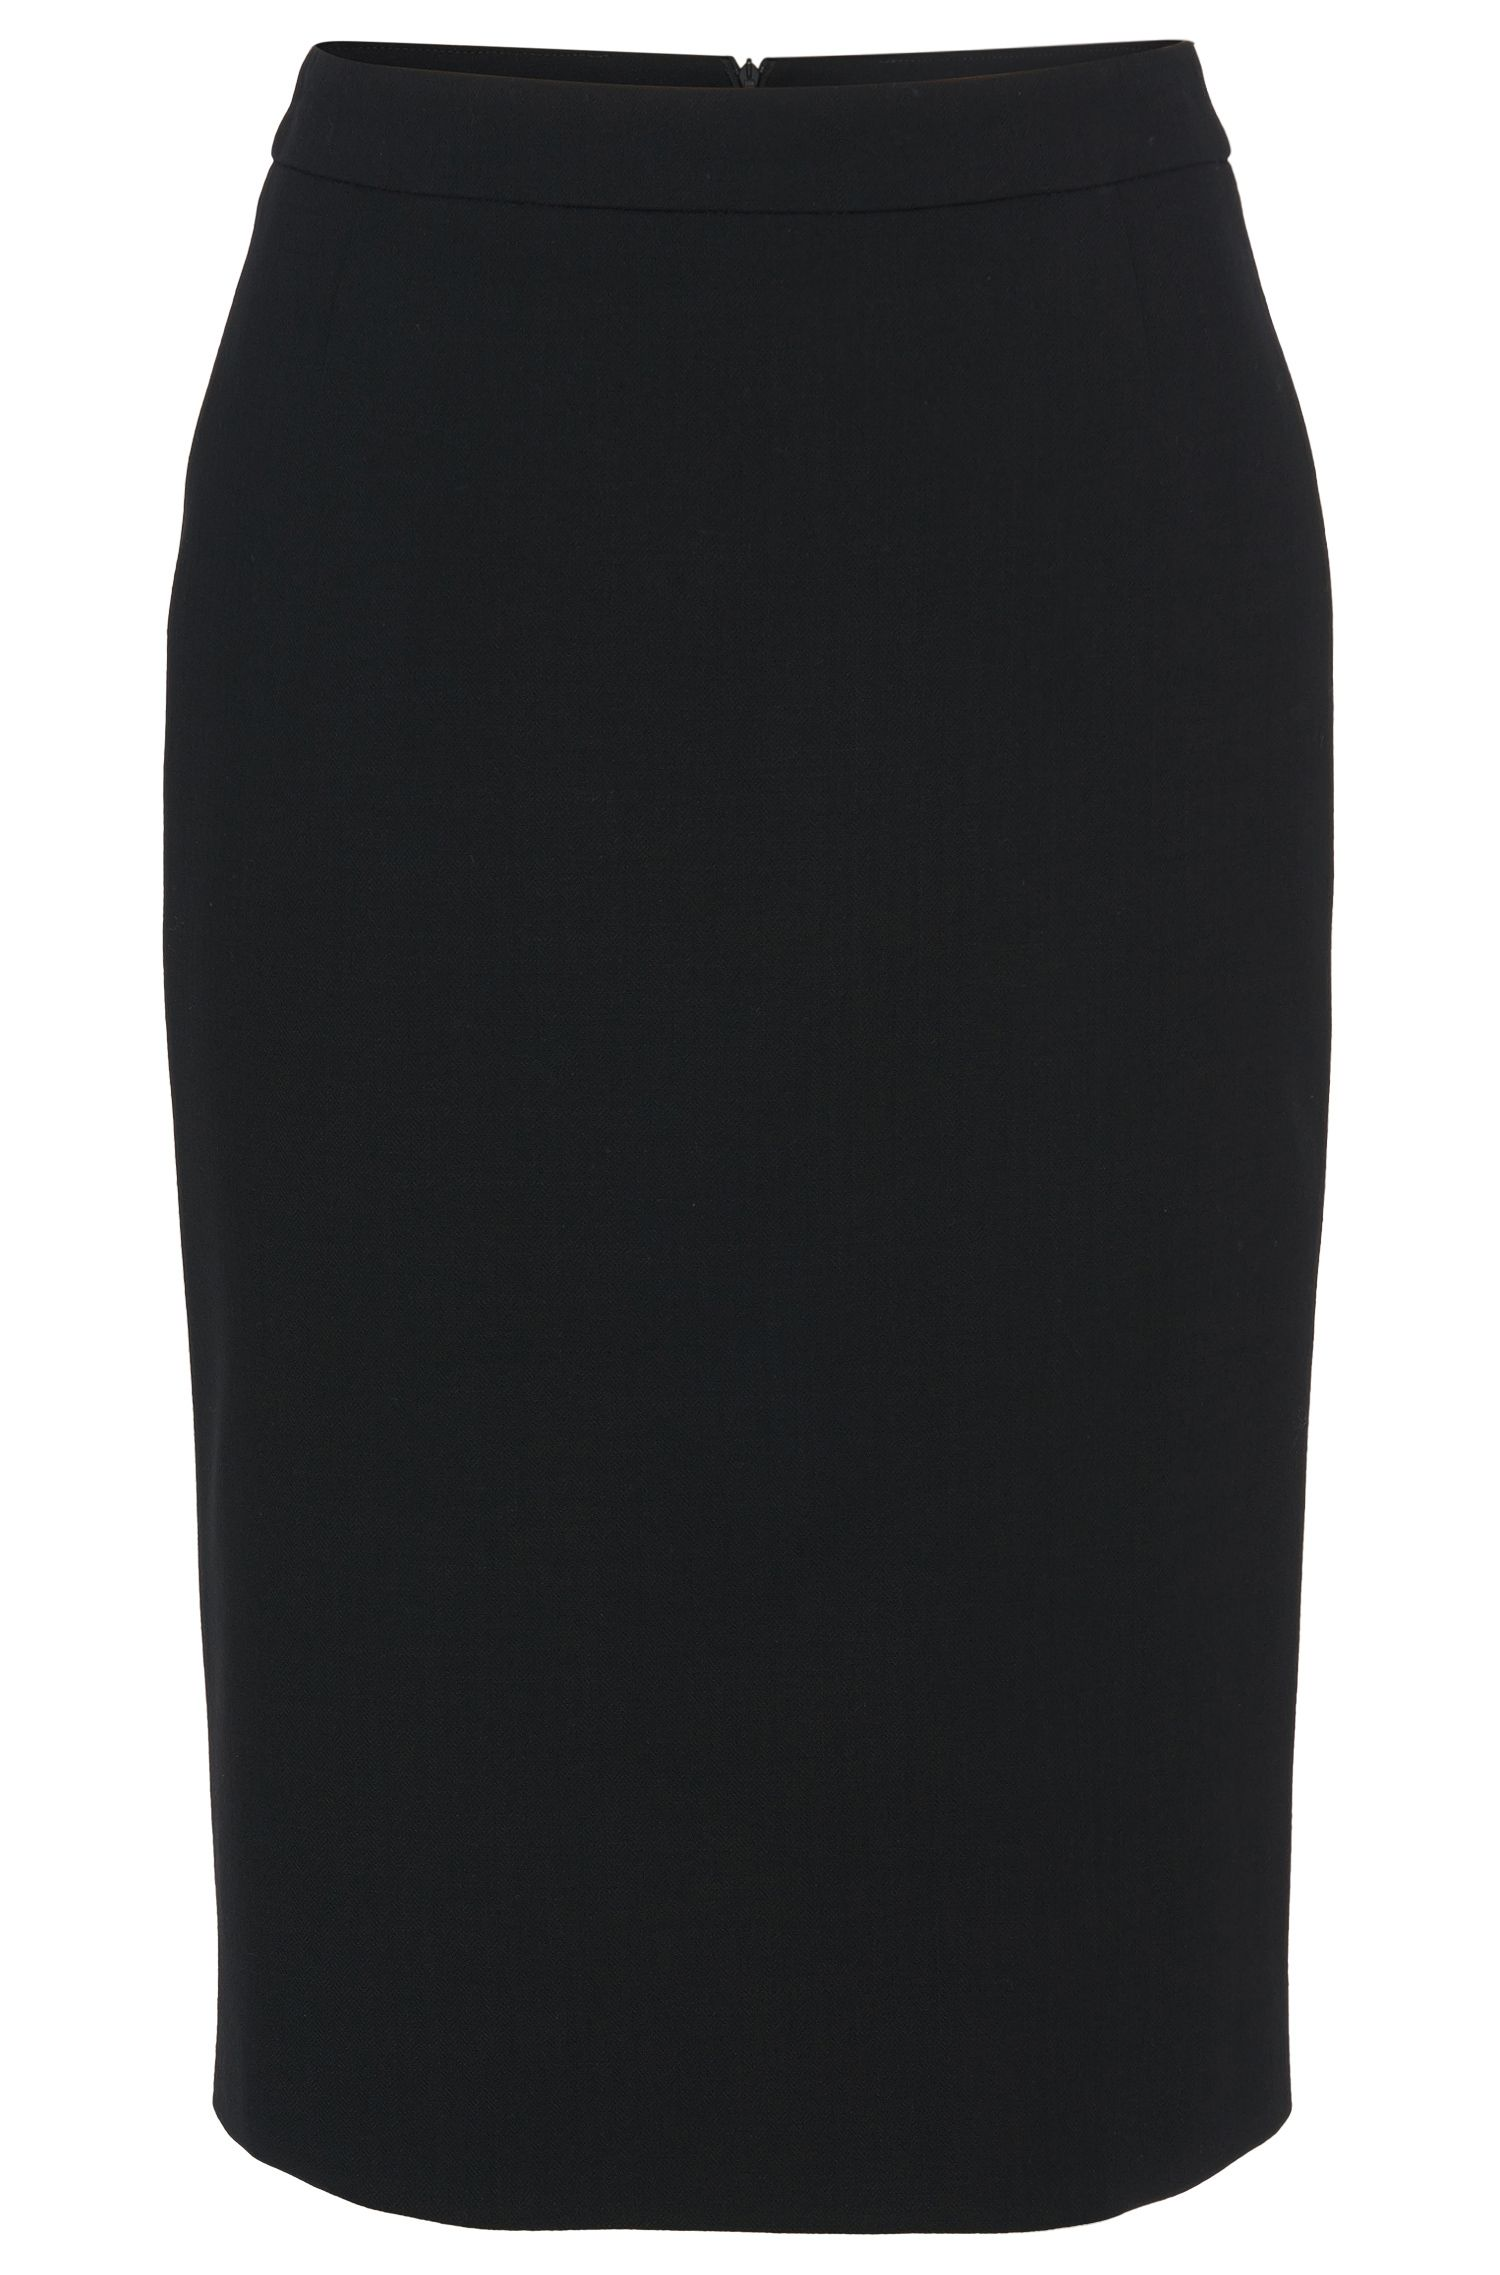 Pencil skirt in stretch new wool: 'Vilea1'